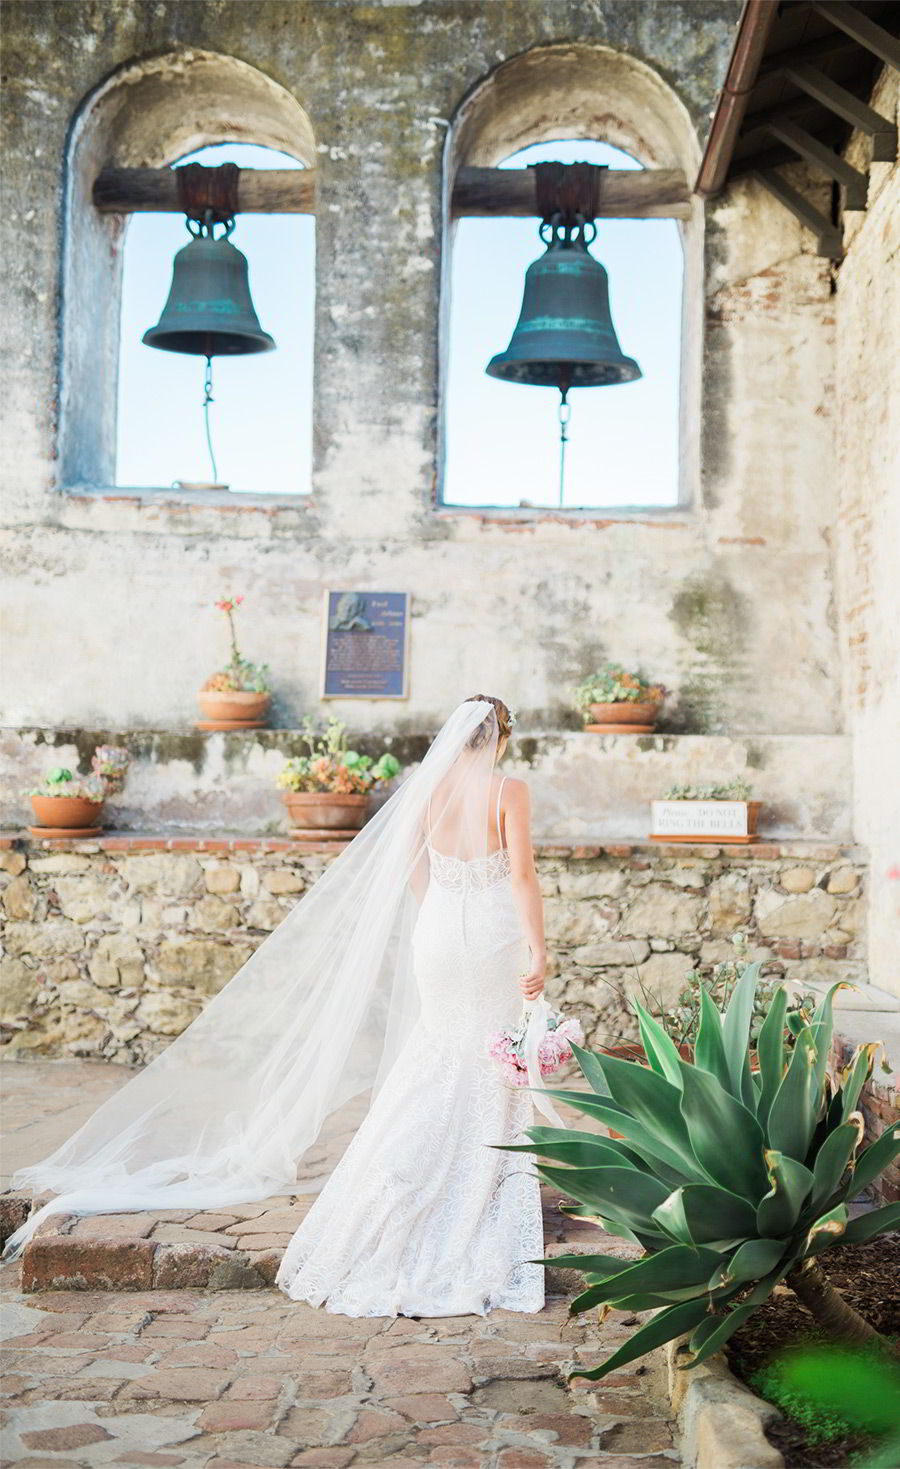 bel aire bridal accessories jen fujikawa photography mission san juan capistrano 6781 headpiece